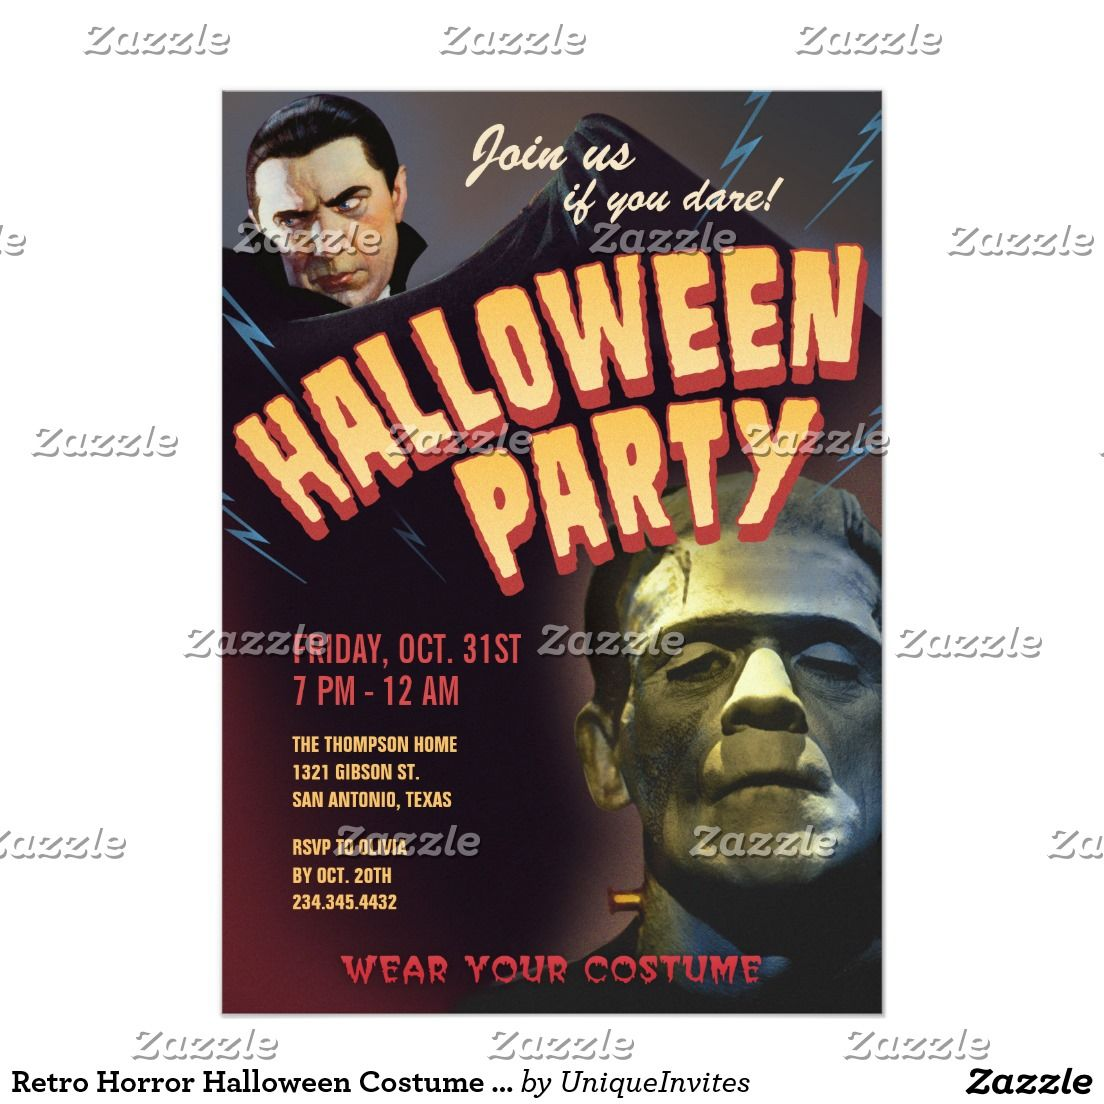 Retro Horror Halloween Costume Party Invitations | Trick or Treat ...